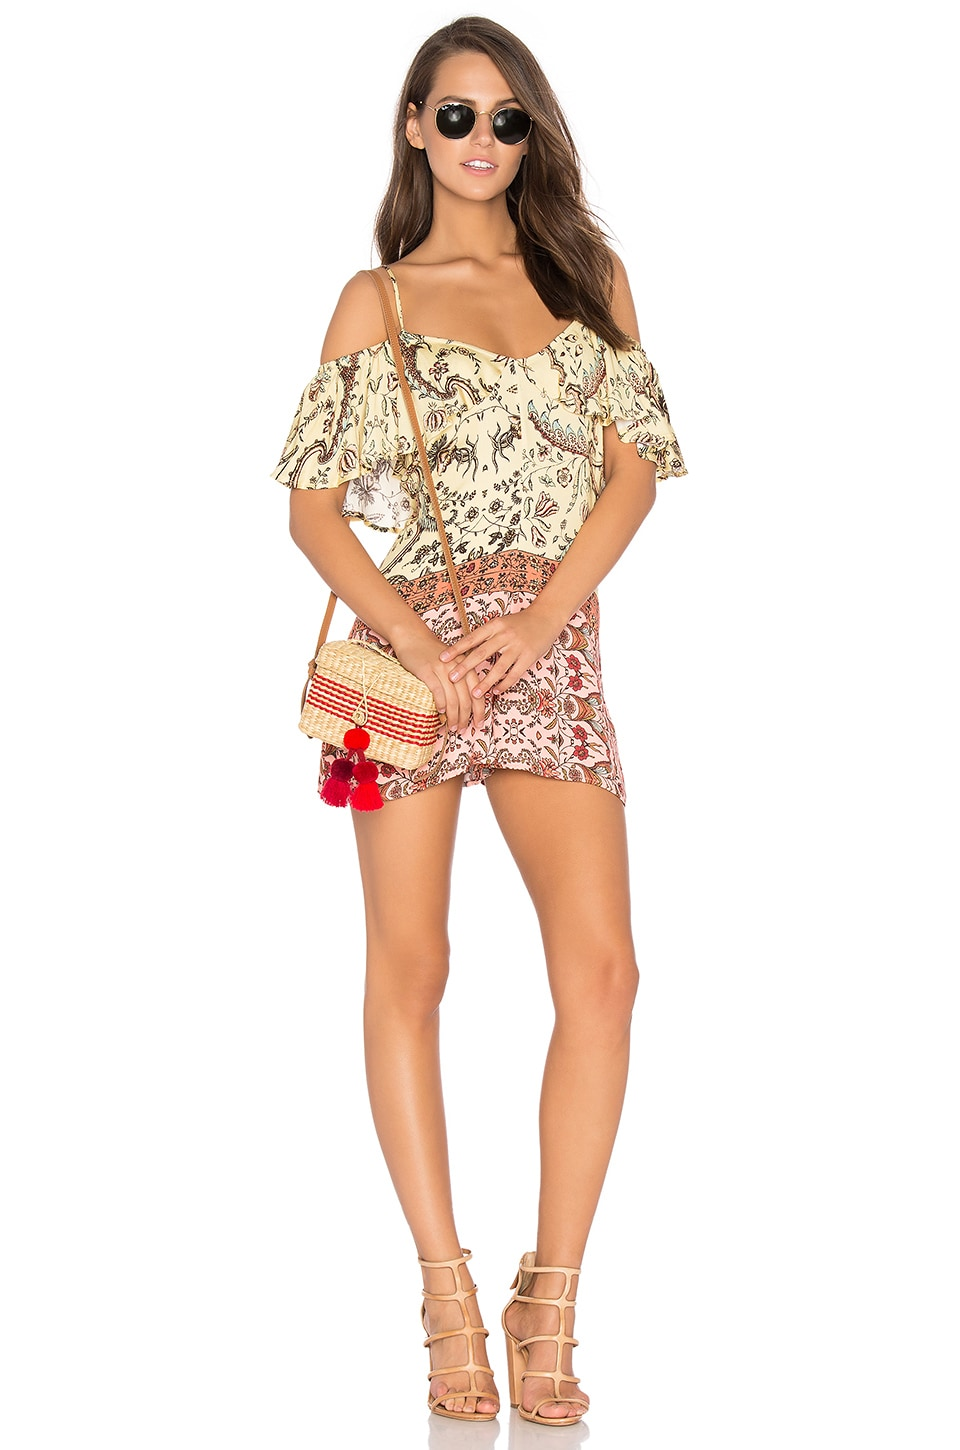 Sounds of Heart Playsuit